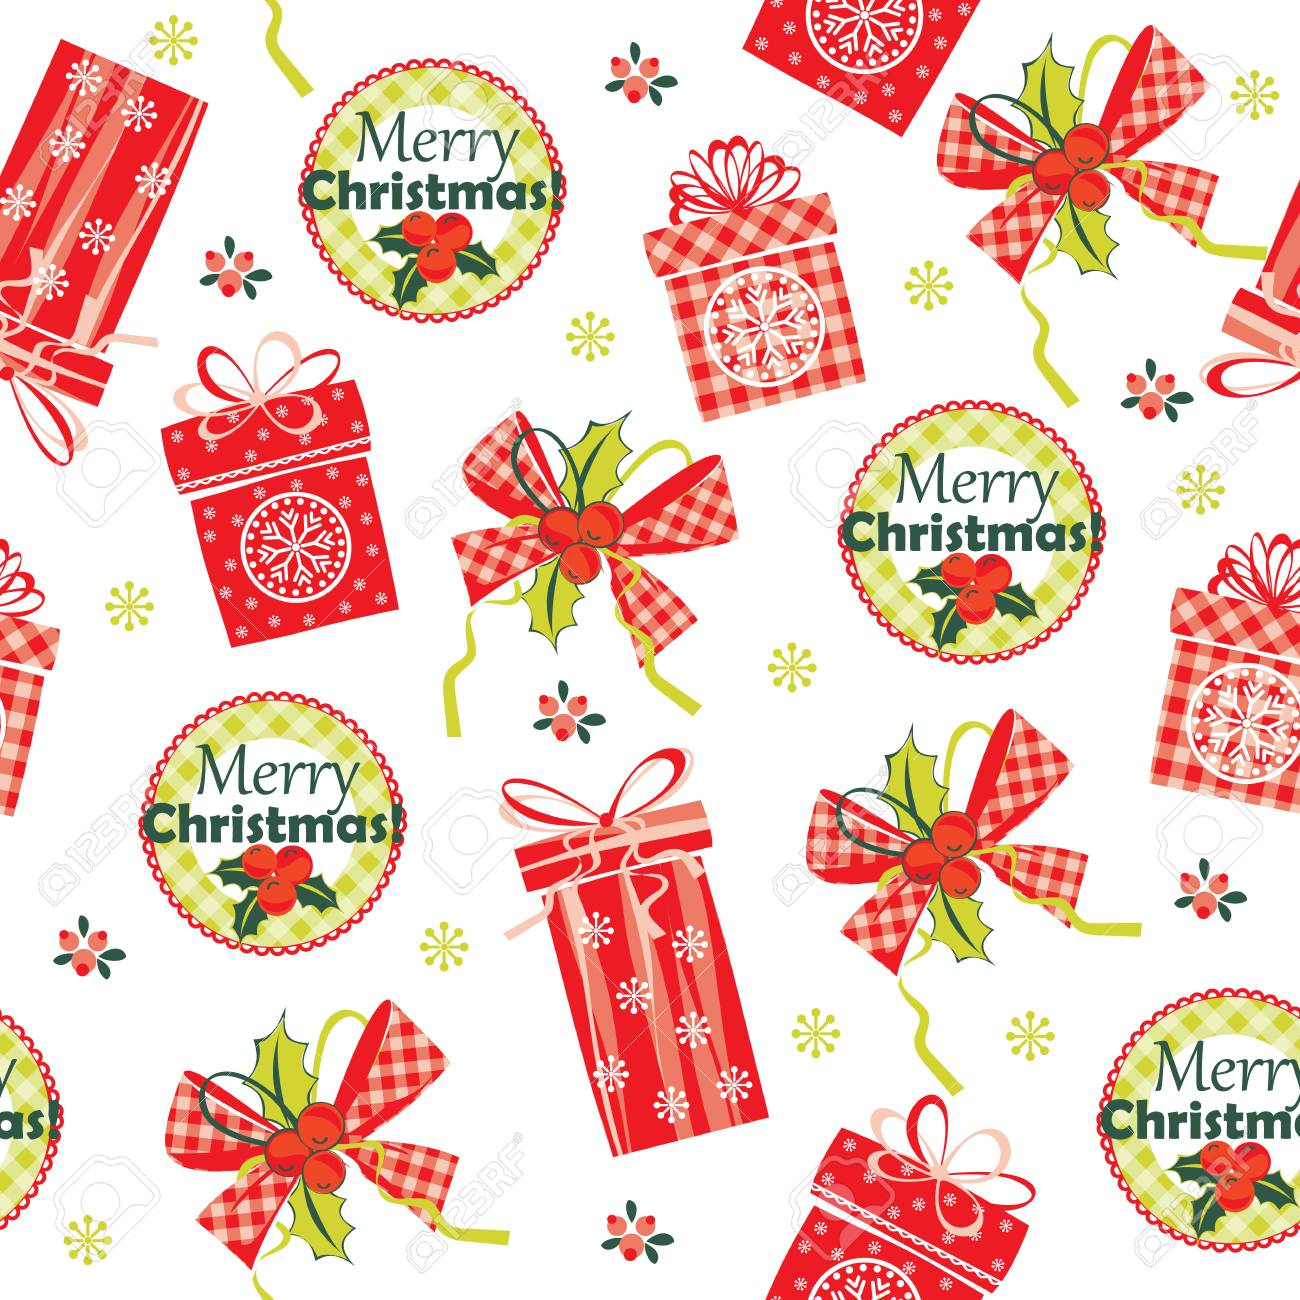 merry christmas and happy new year background stock vector 33559993